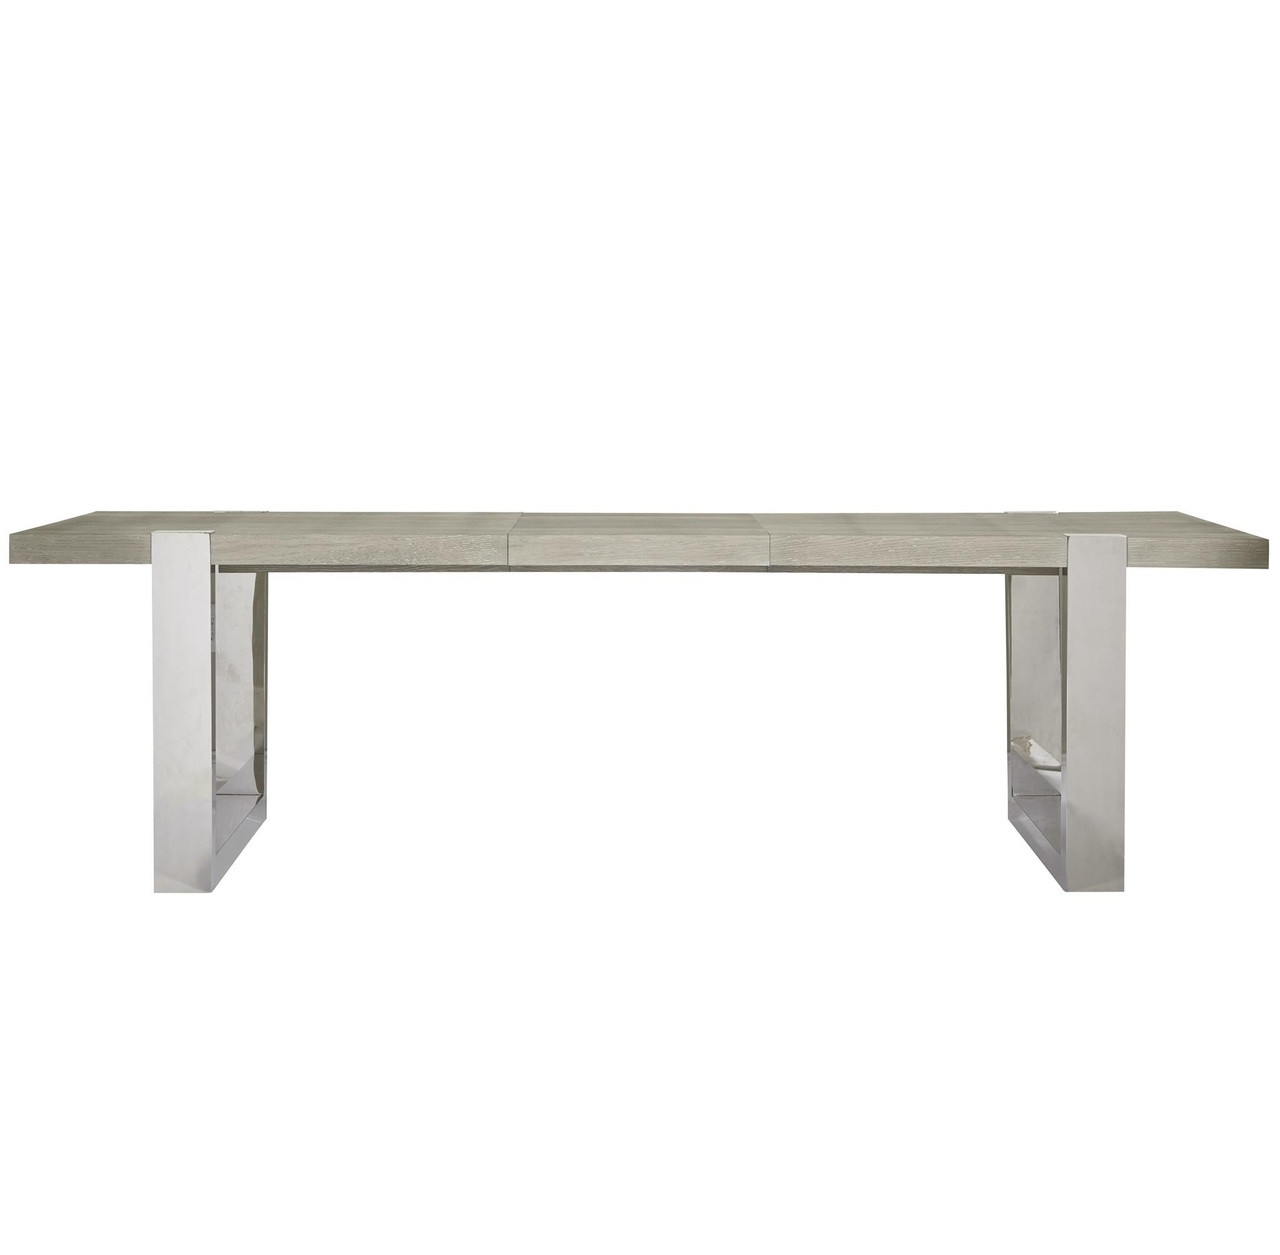 Desmond Modern Oak Wood + Stainless Steel Extension Dining Table